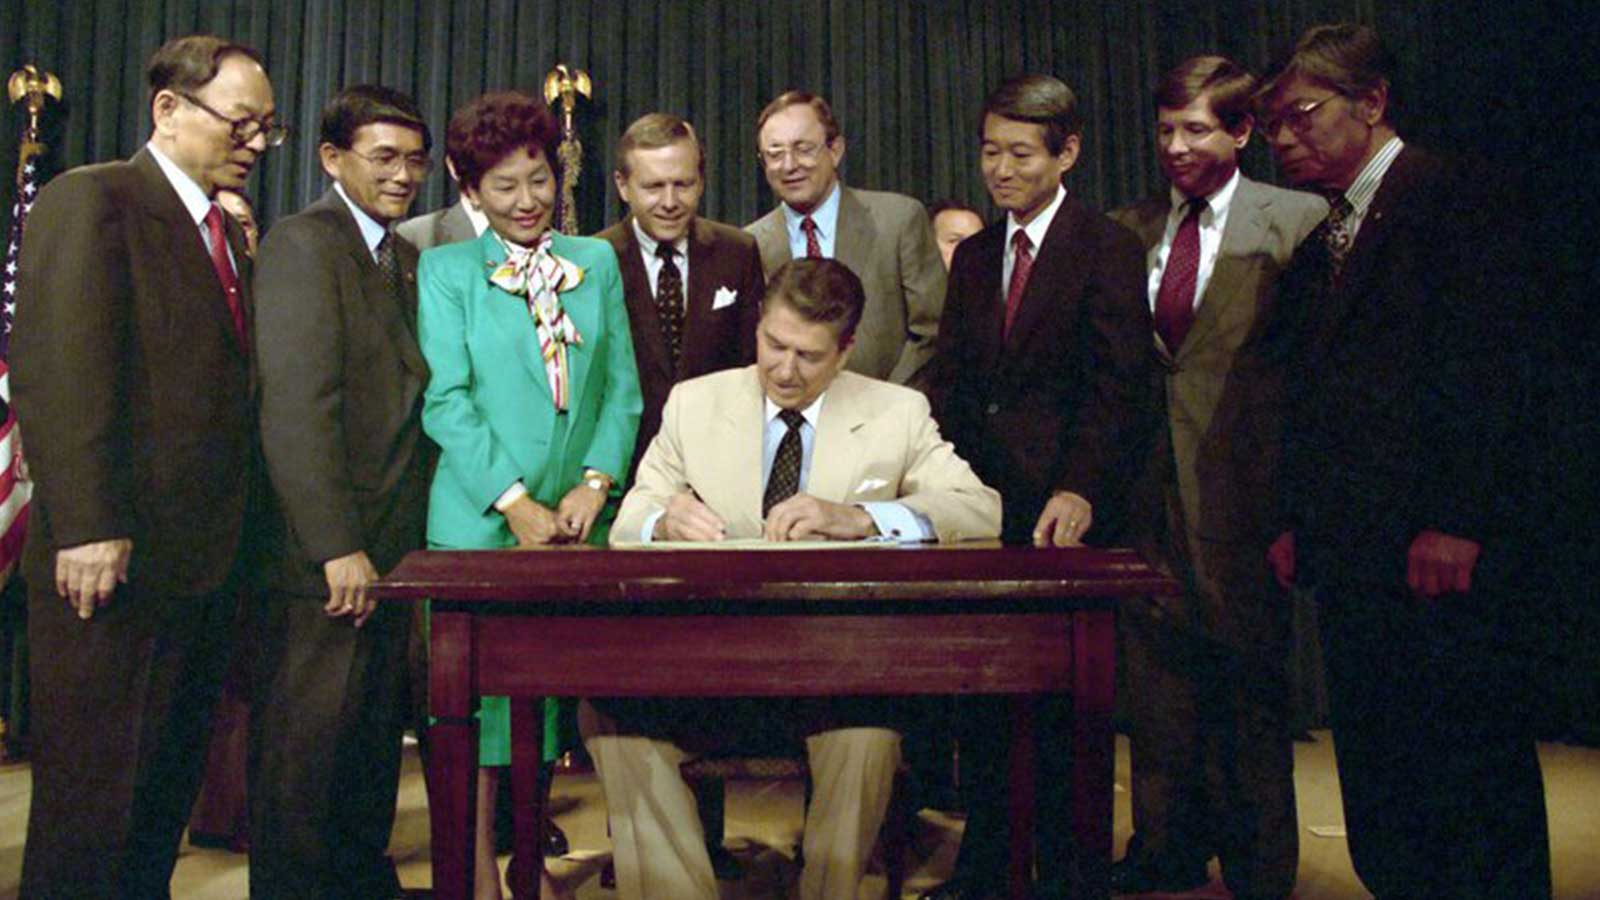 President Reagan signing a reparations bill in 1987 for Japanese-Americans interned during World War Two